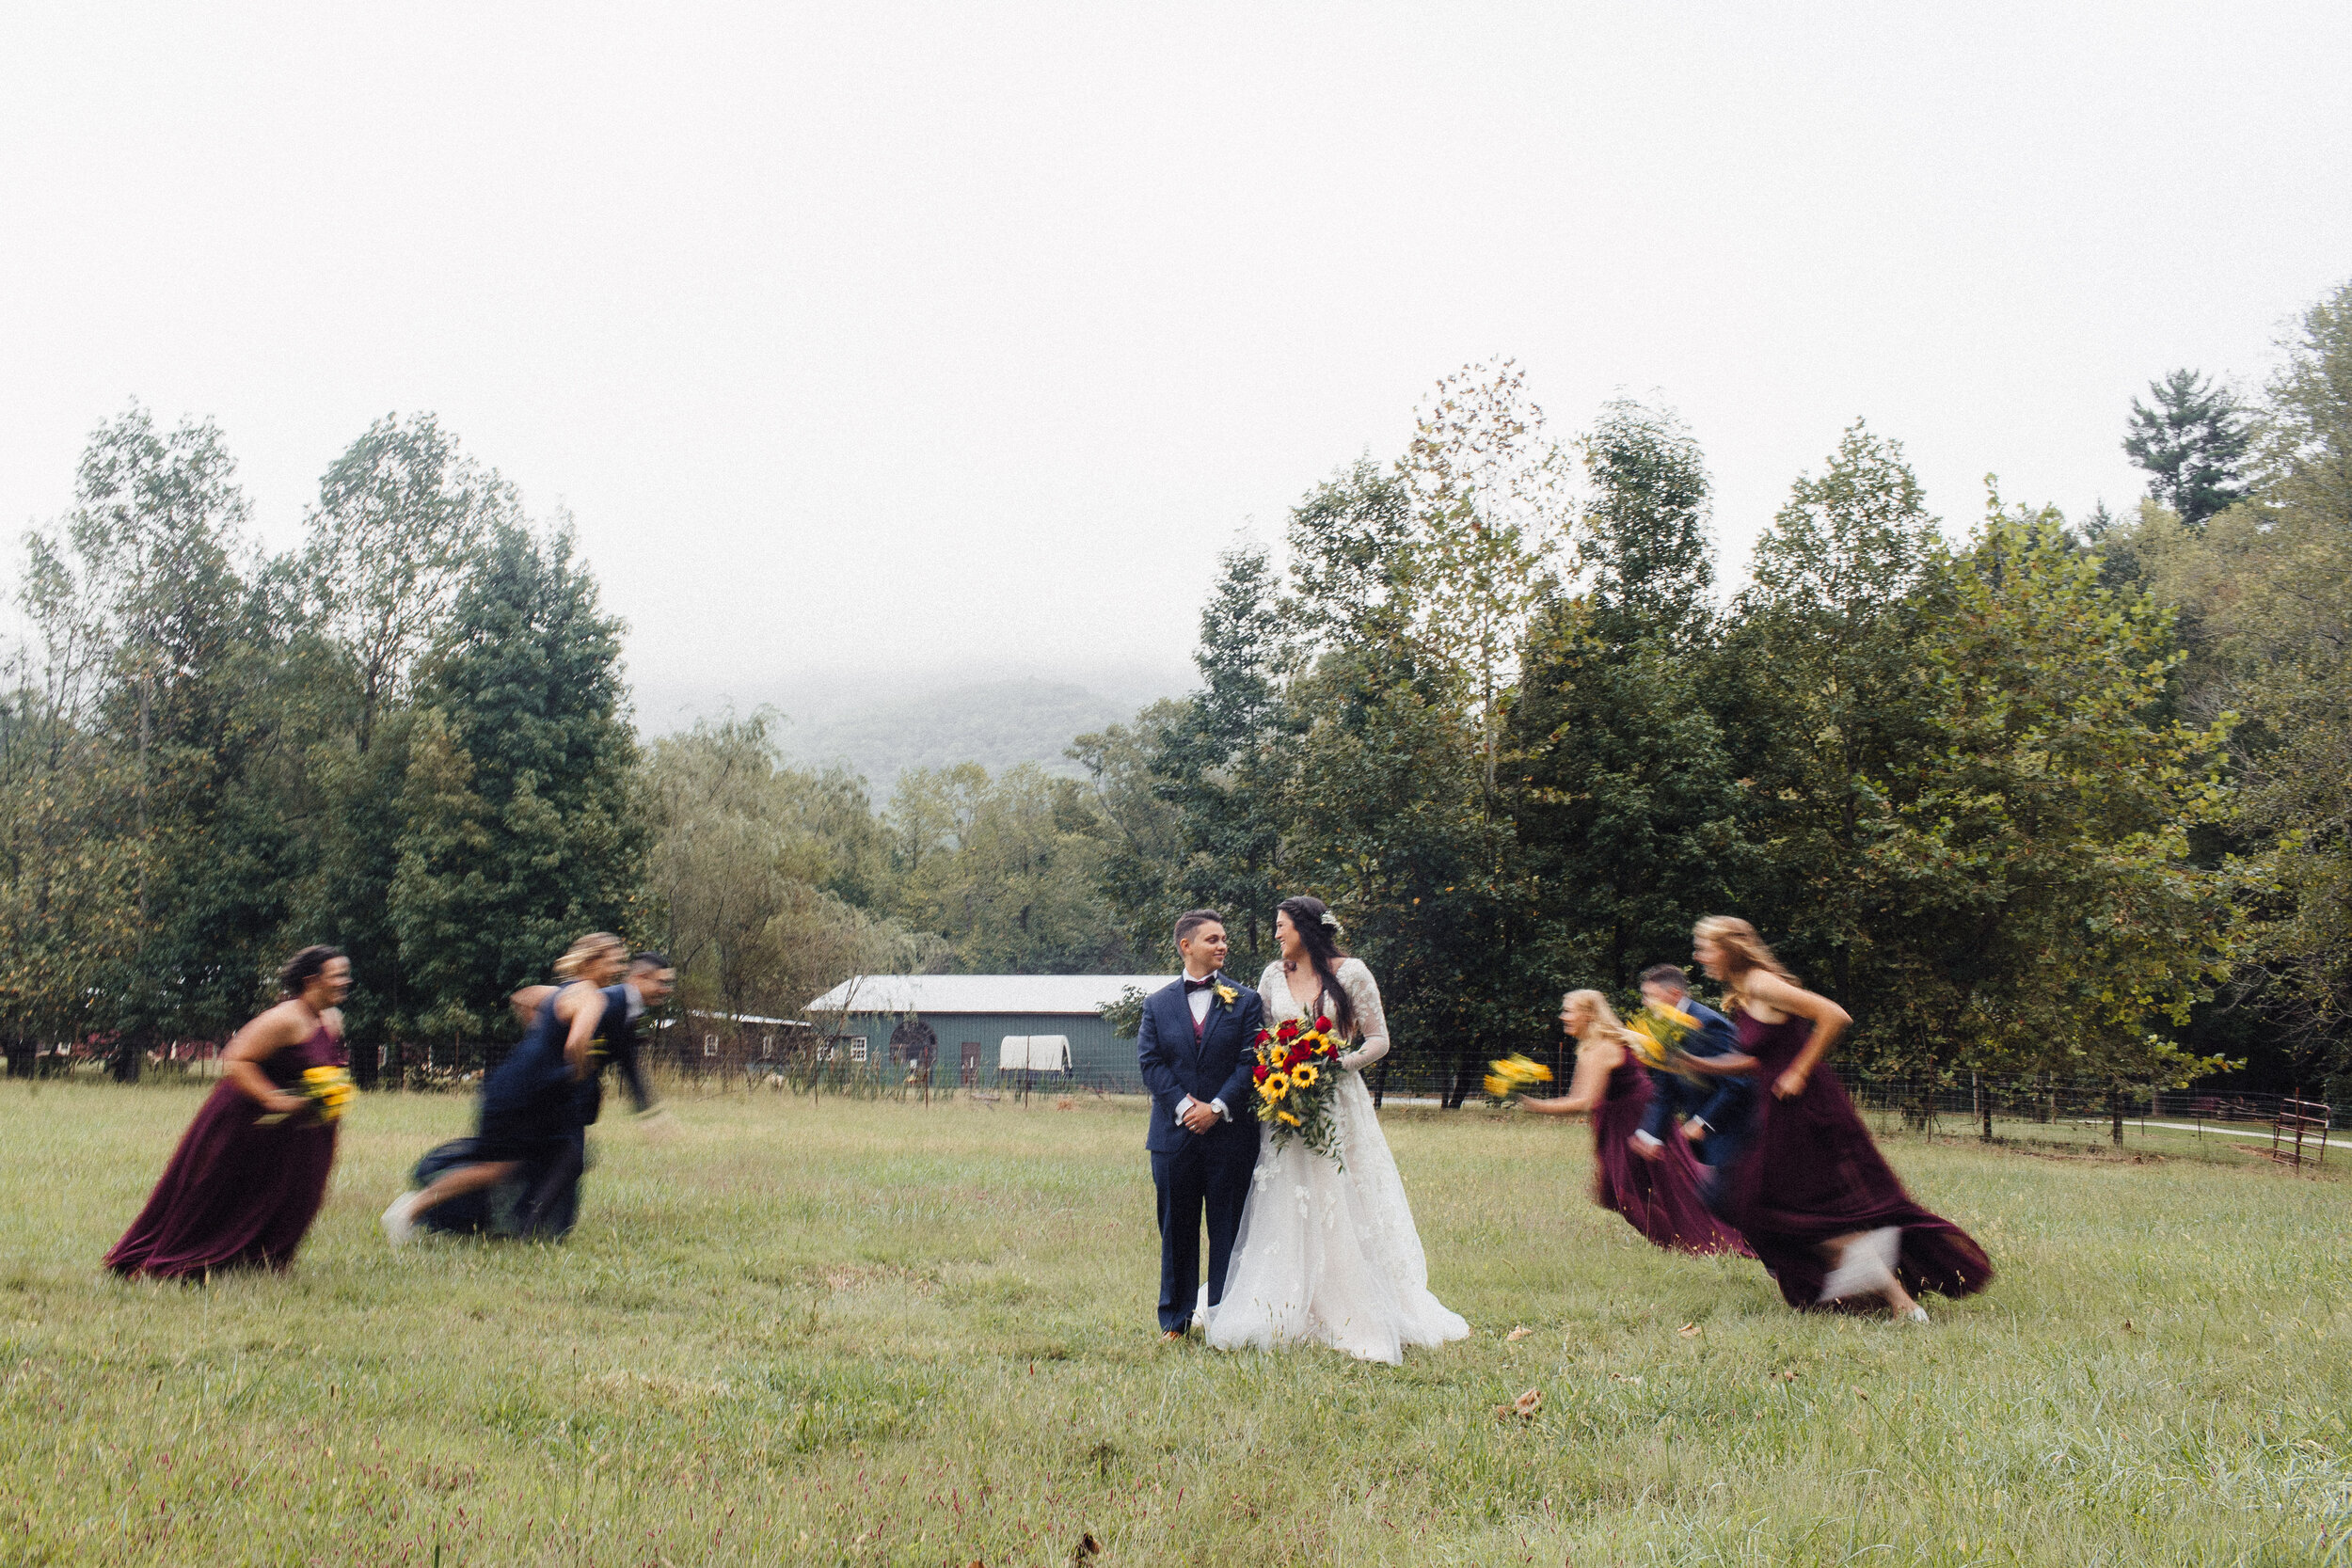 atlanta_wedding_photographers_georgia_same_sex_rustic_barn_farm_lesbian_weddings_inclusive_2176.jpg